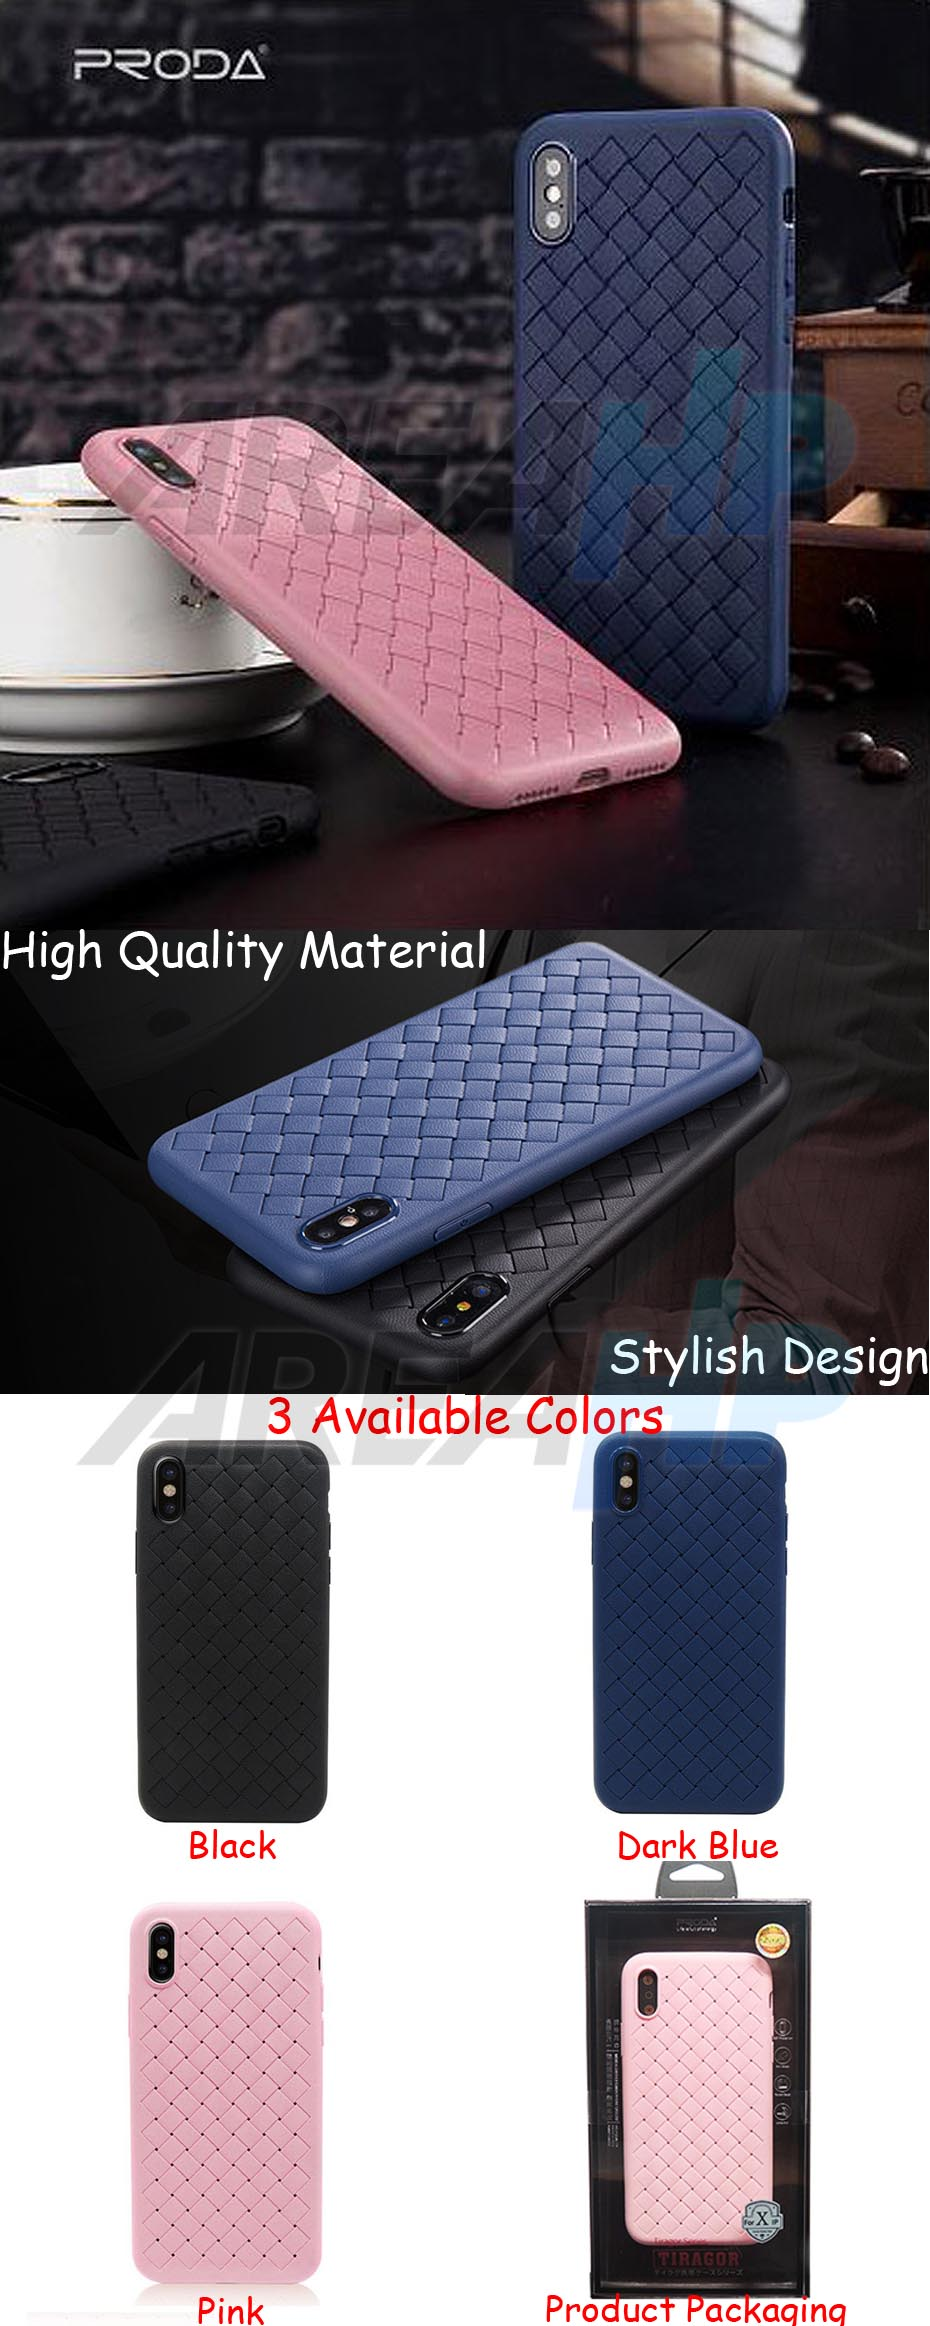 Remax Tiragor Series Case iPhone X Overview